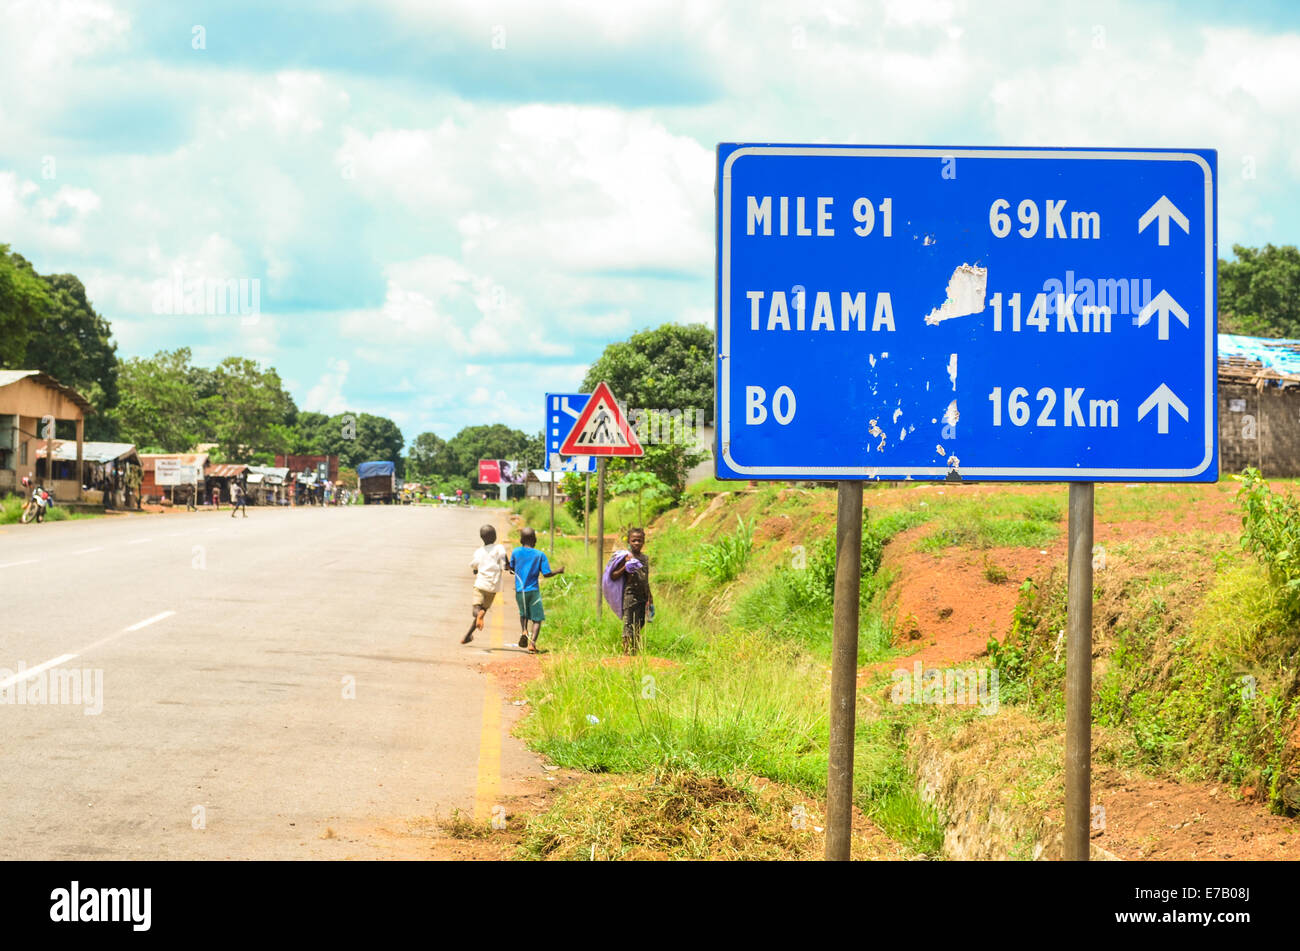 Road sign in Sierra Leone, directions eastbound (Liberia) to Mile 91, Taiama and Bo - Stock Image